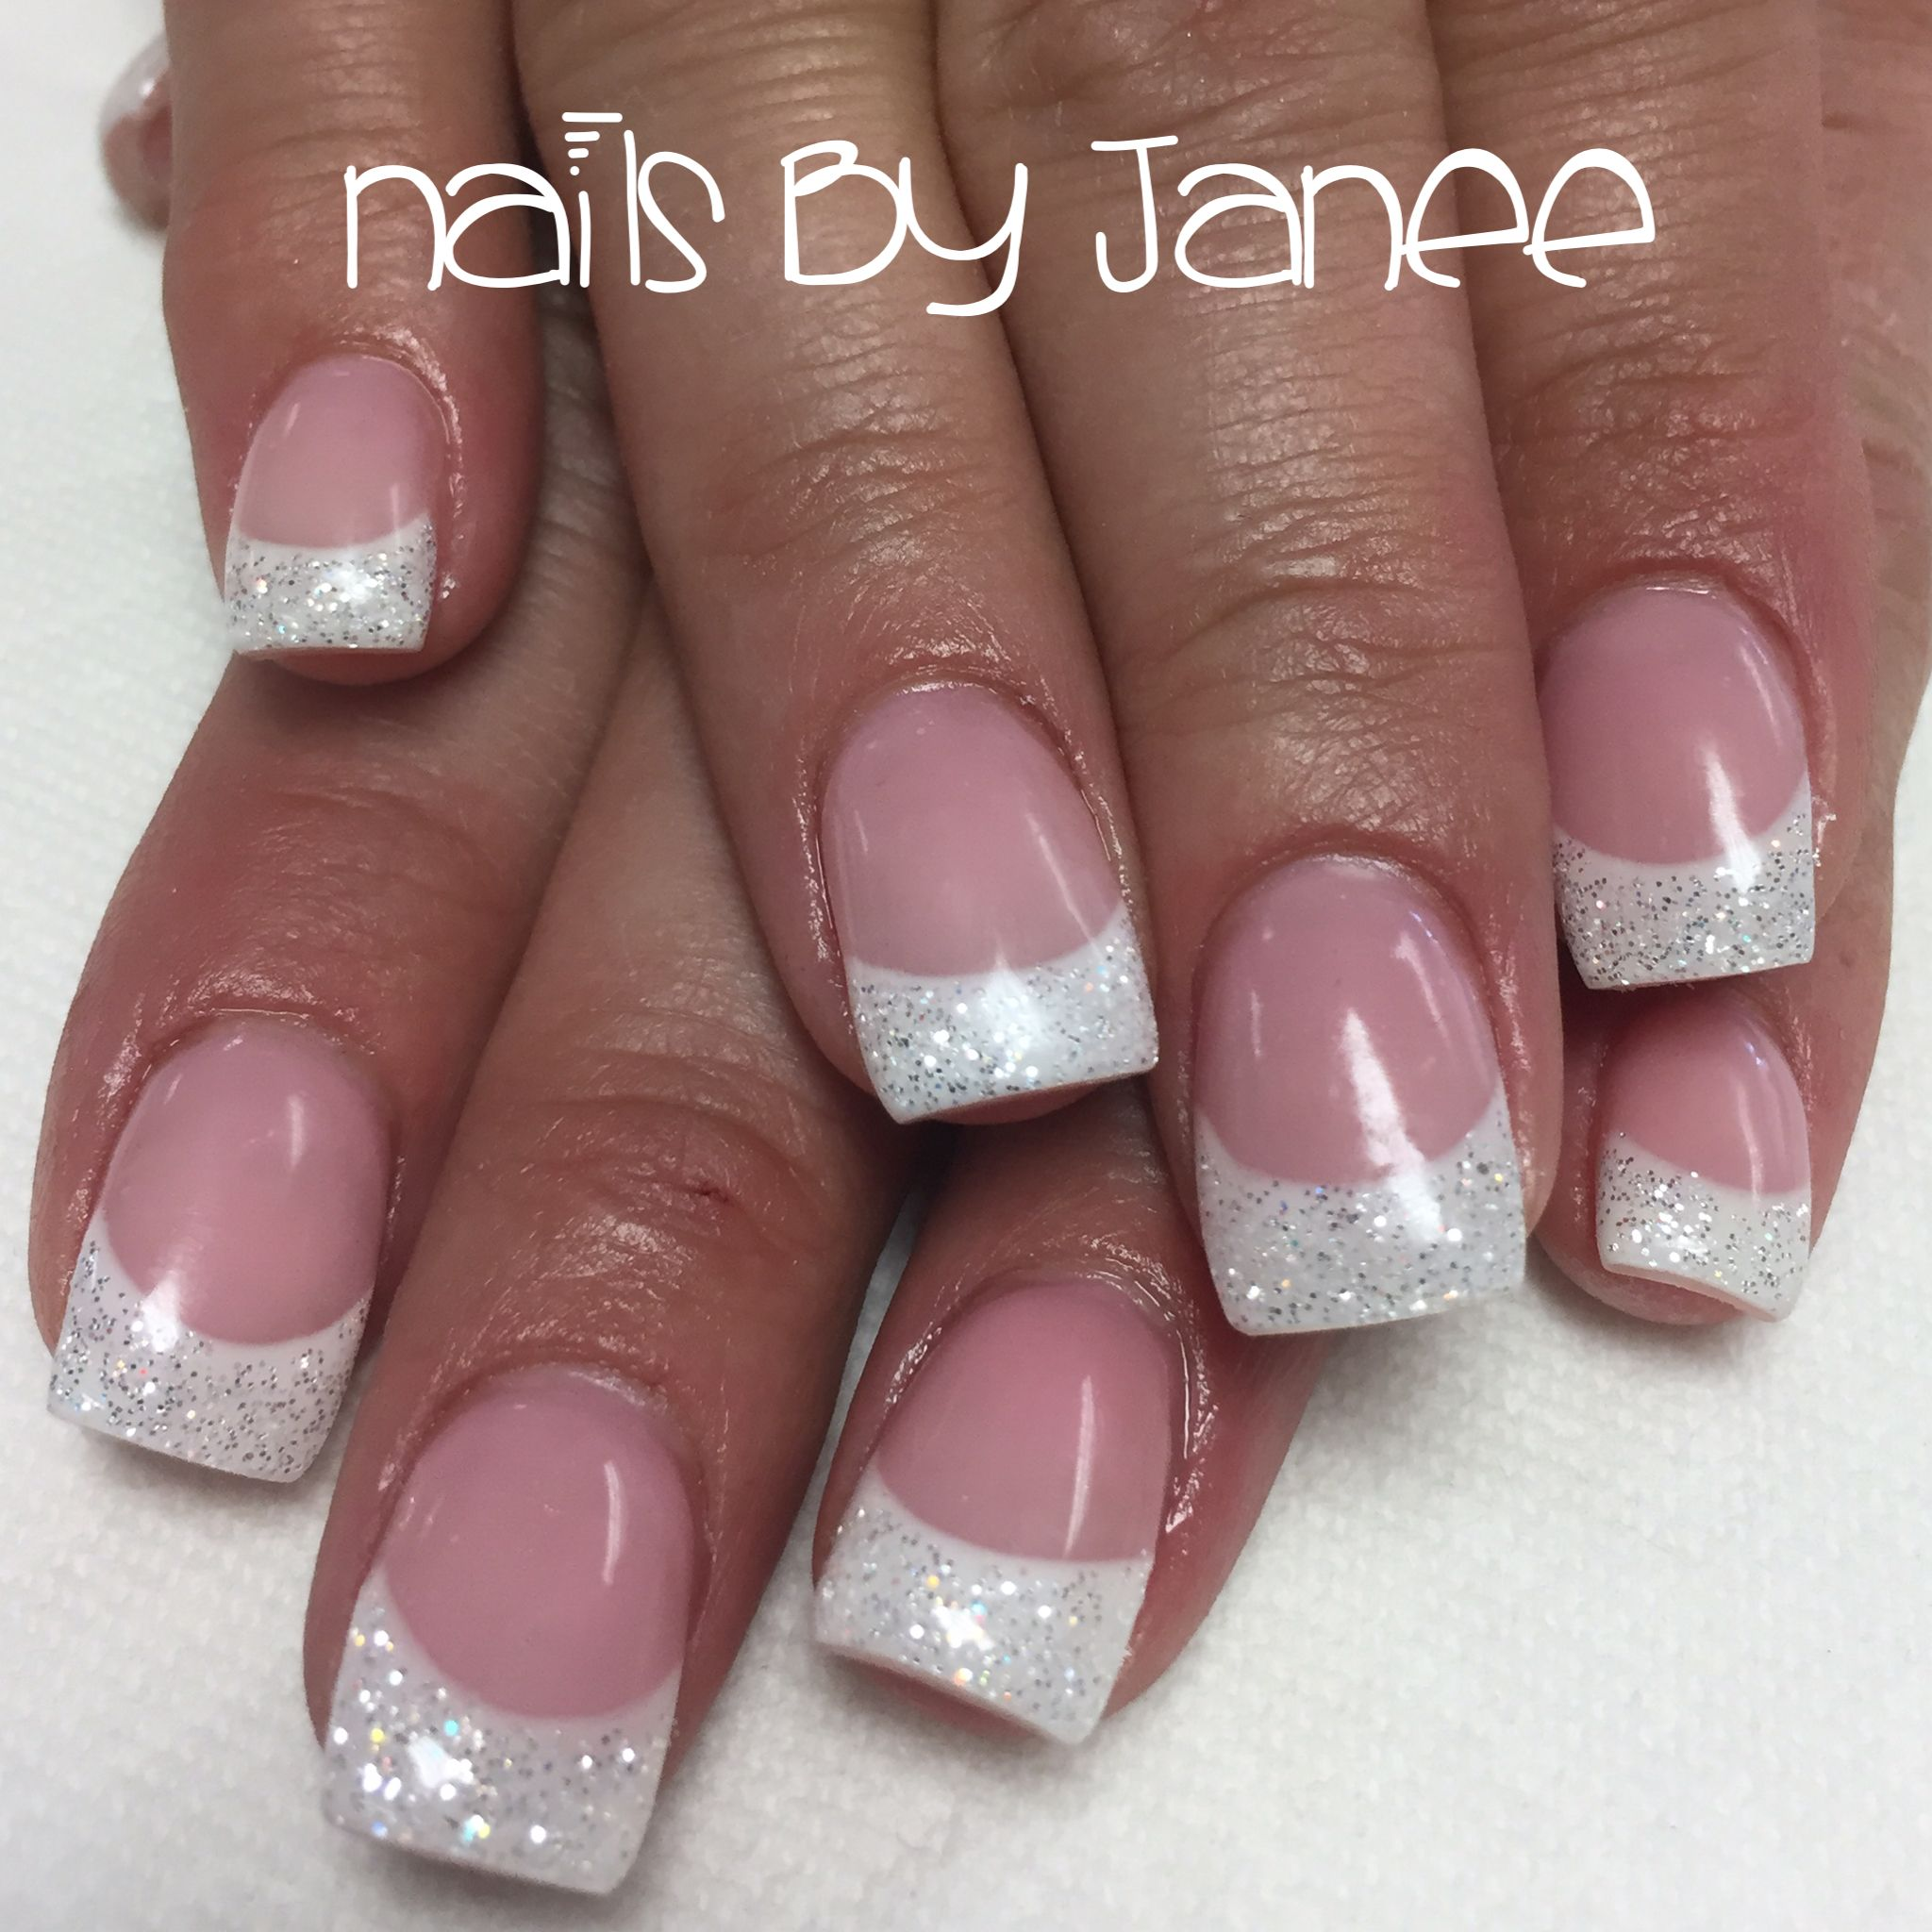 Pink & White gel Nails by Janee | Nails by Janee at A Wild Hair ...